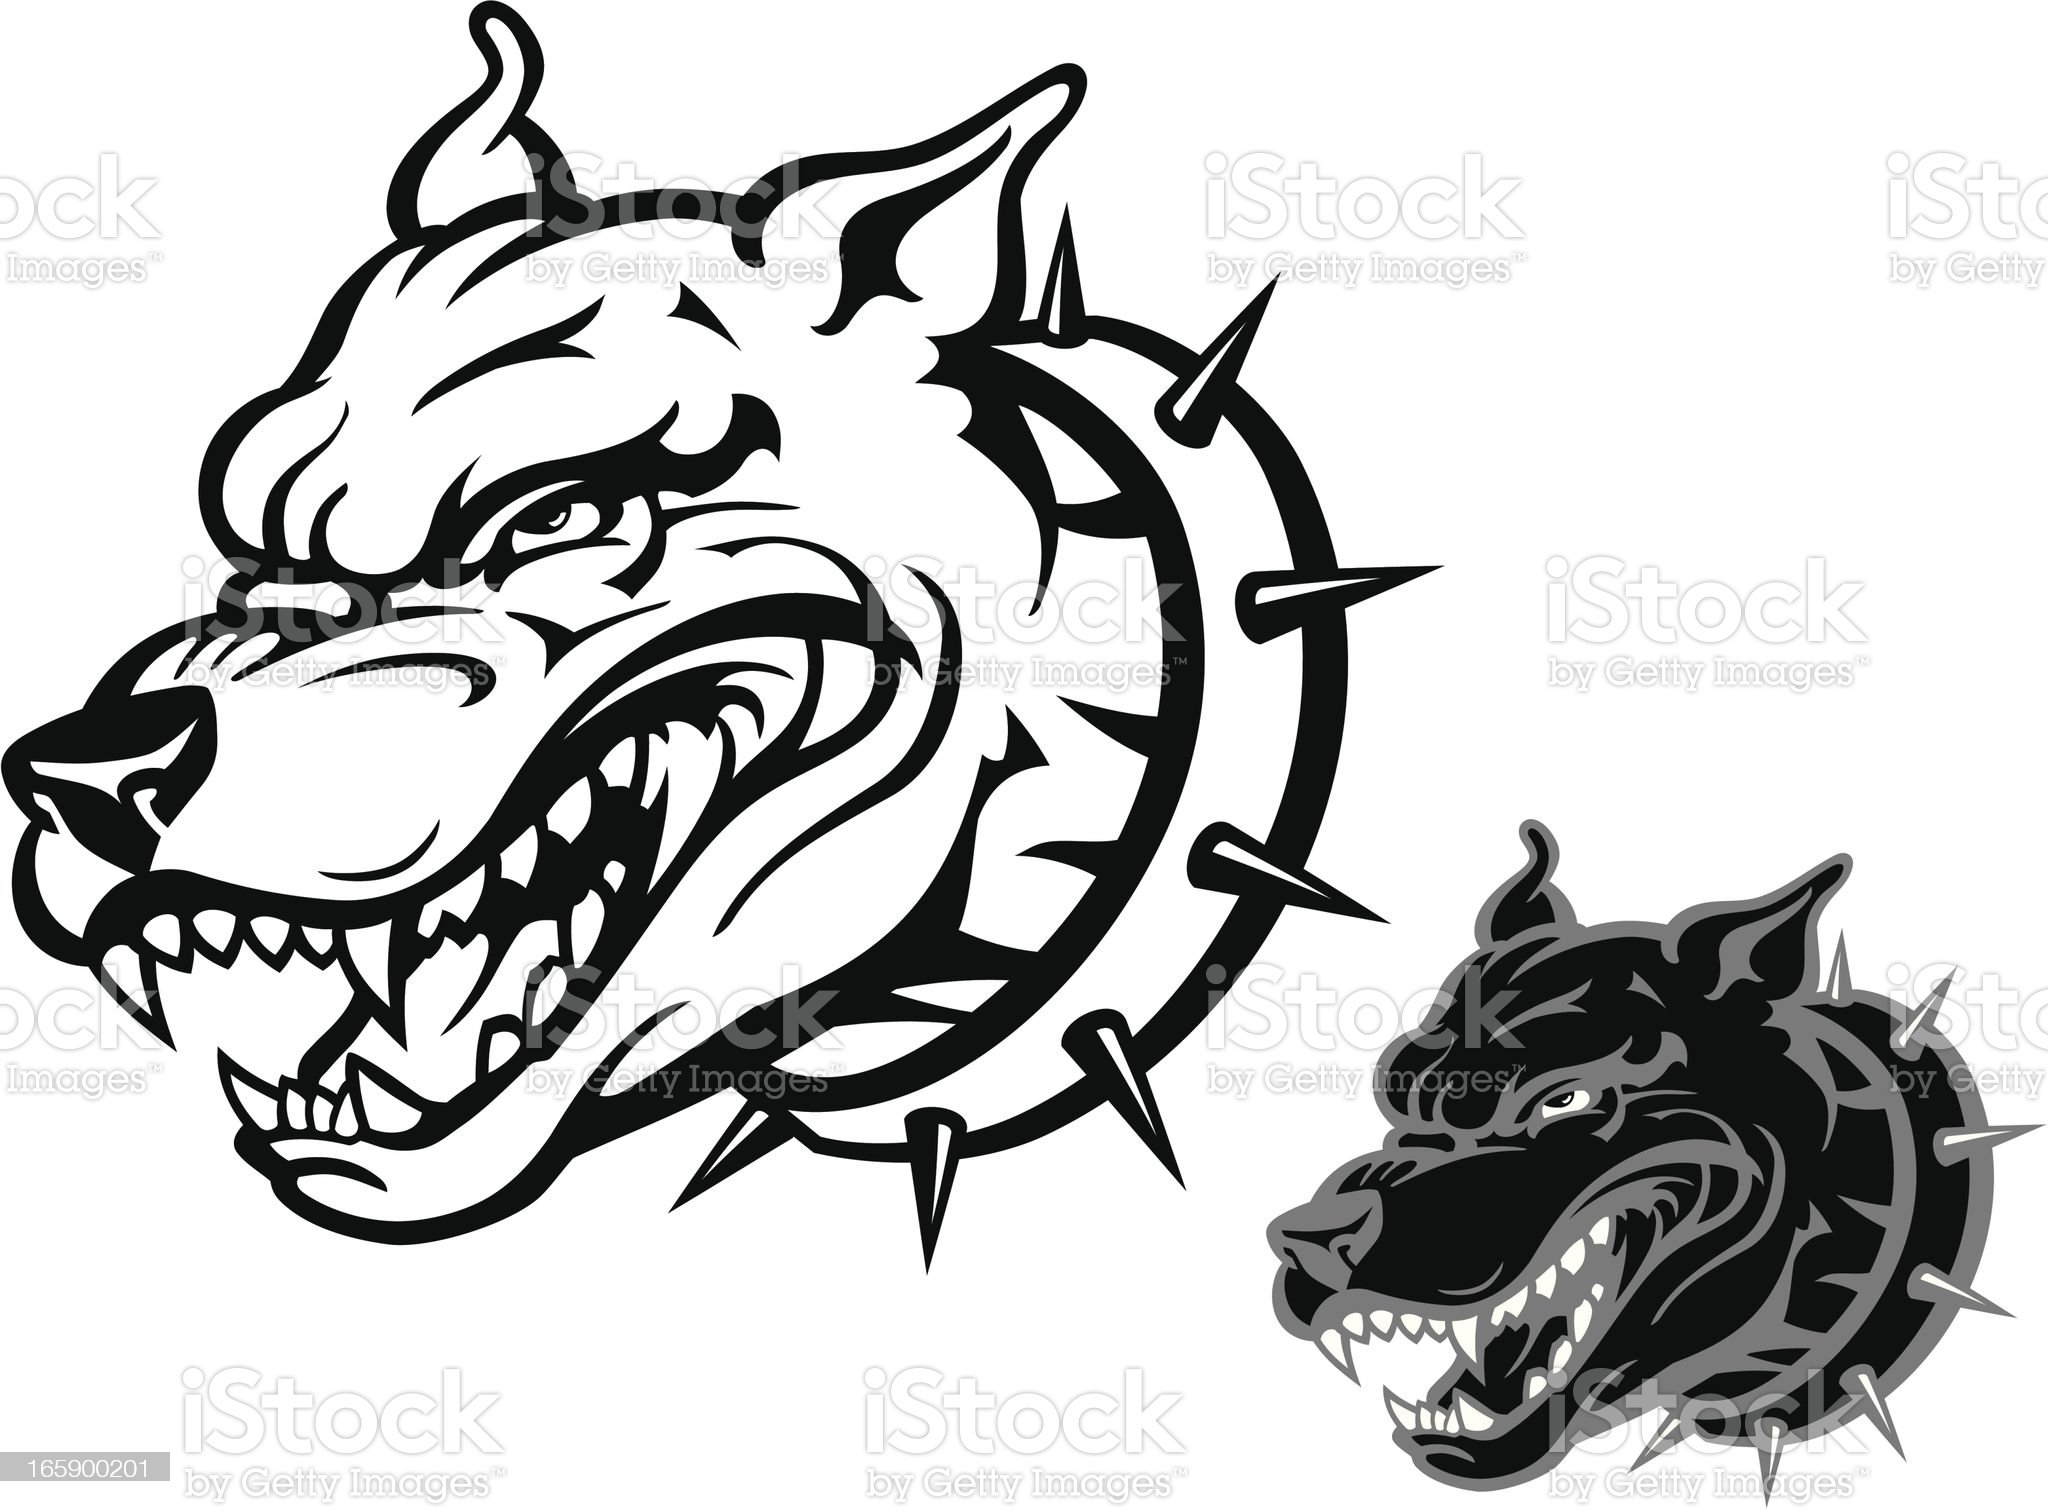 Angry Pitbull royalty-free stock vector art